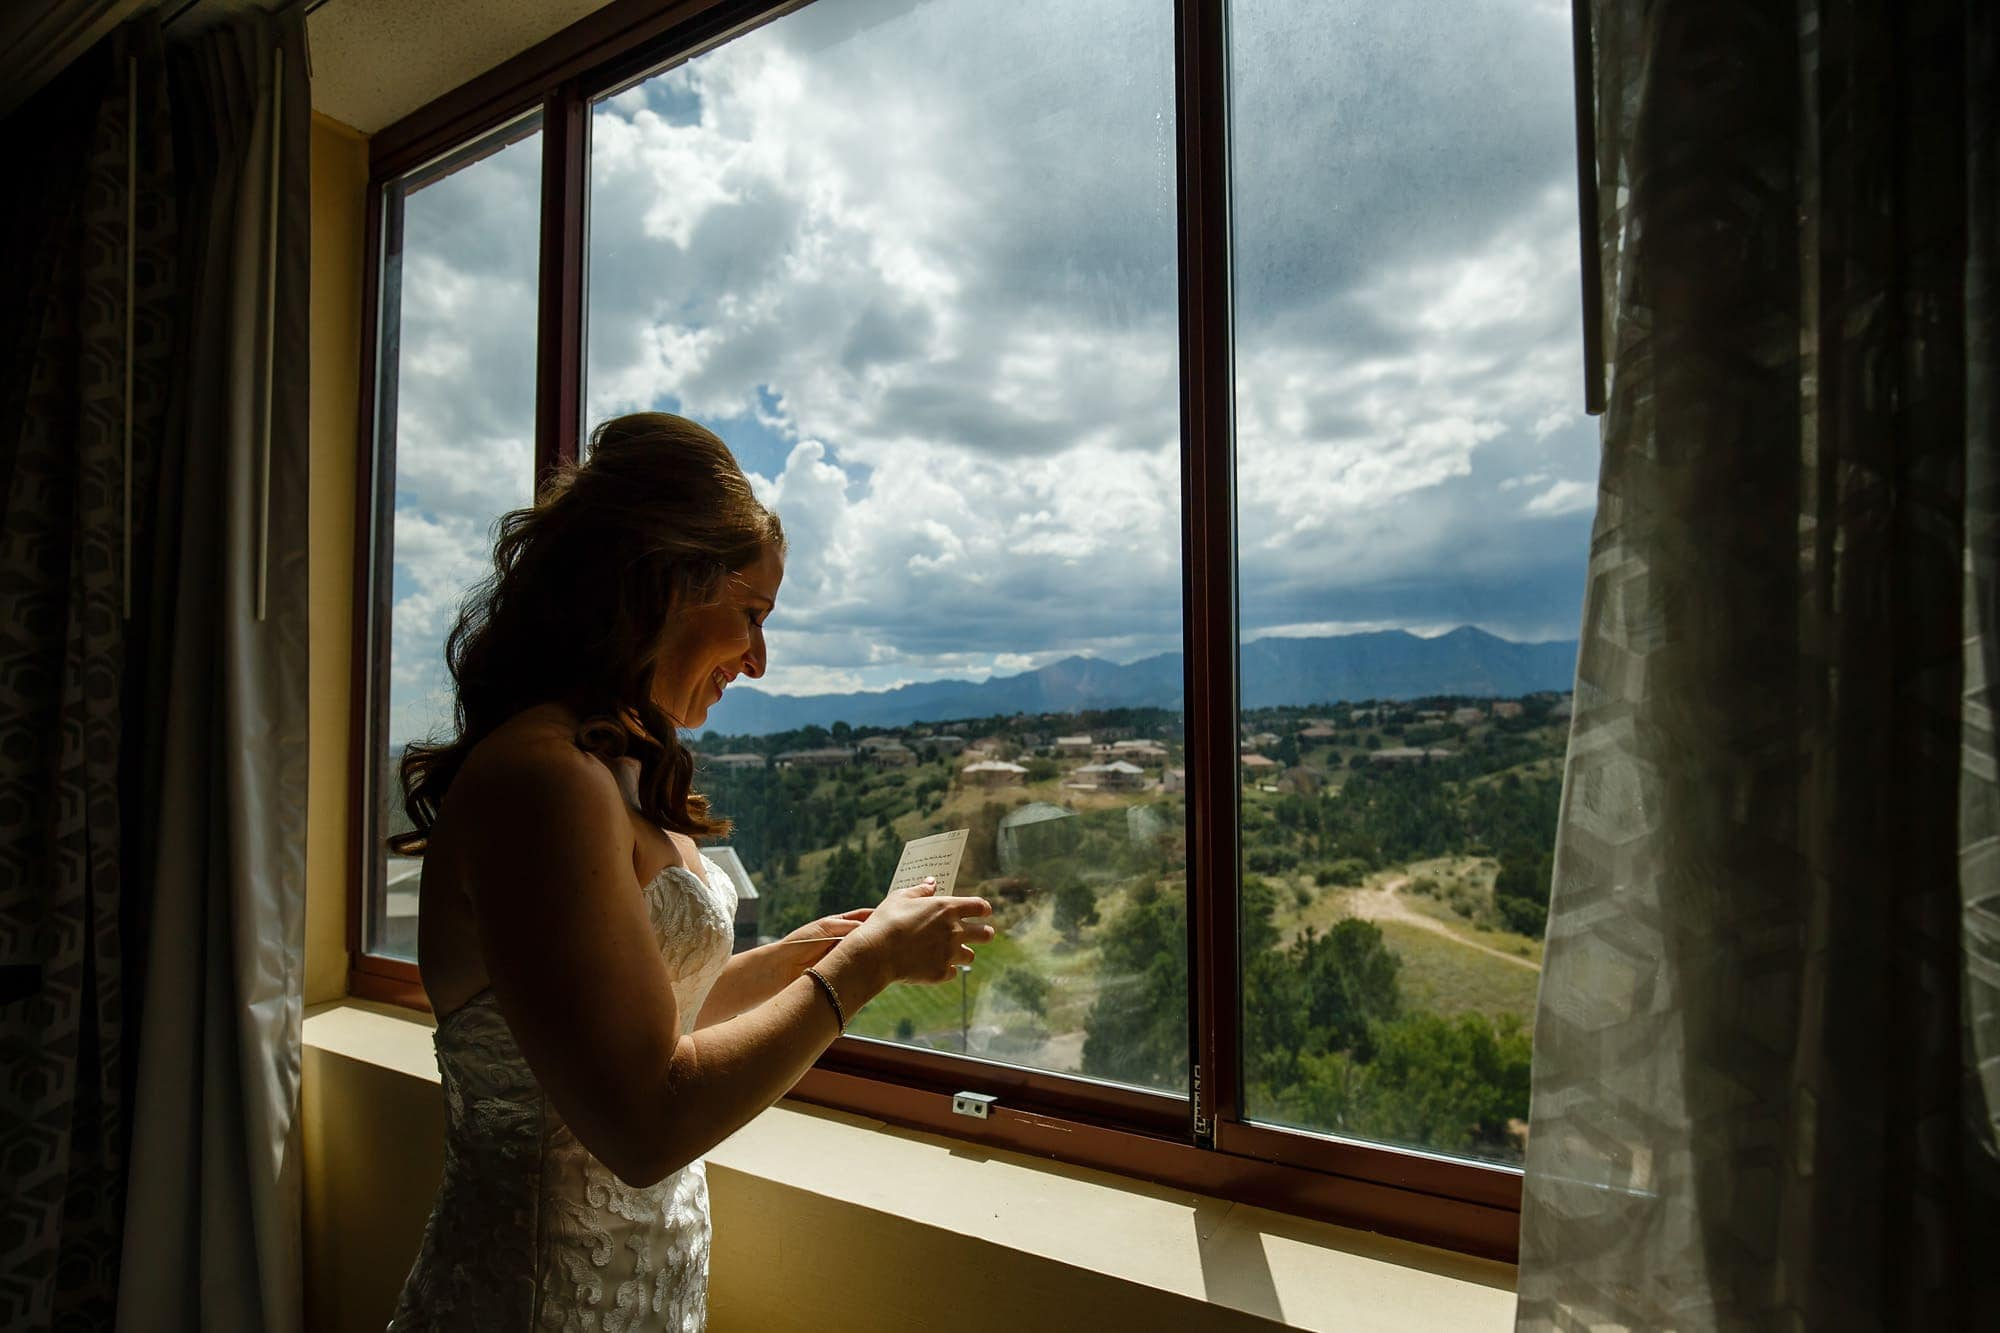 Devan reads a note from her future husband in her wedding gown while looking out towards Cheyenne Mountain and Pikes Peak